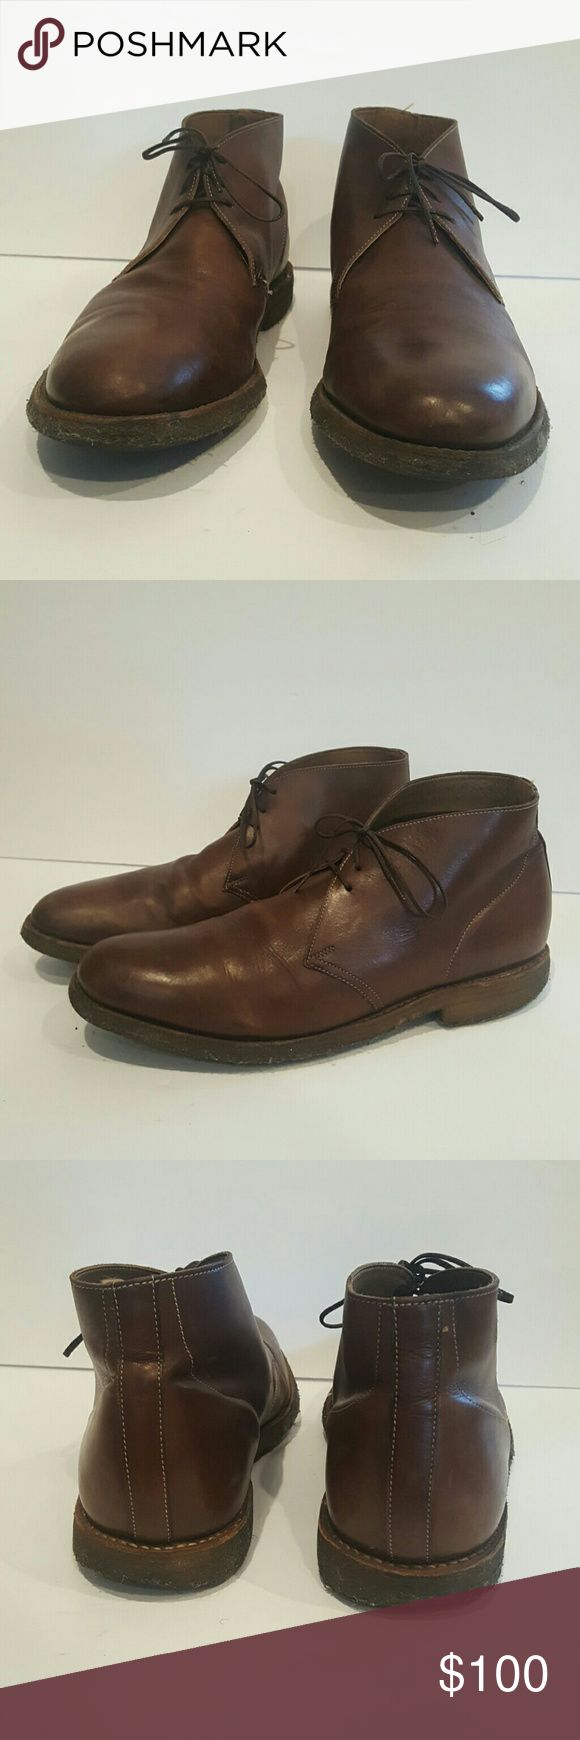 MENS G SHOES 9.5 F CHUKKA BOOTS MENS G SHOES 9.5 F CHUKKA BOOTS VERY COMFORTABLE BROWN LEATHER BEAUTIFUL g Shoes Chukka Boots